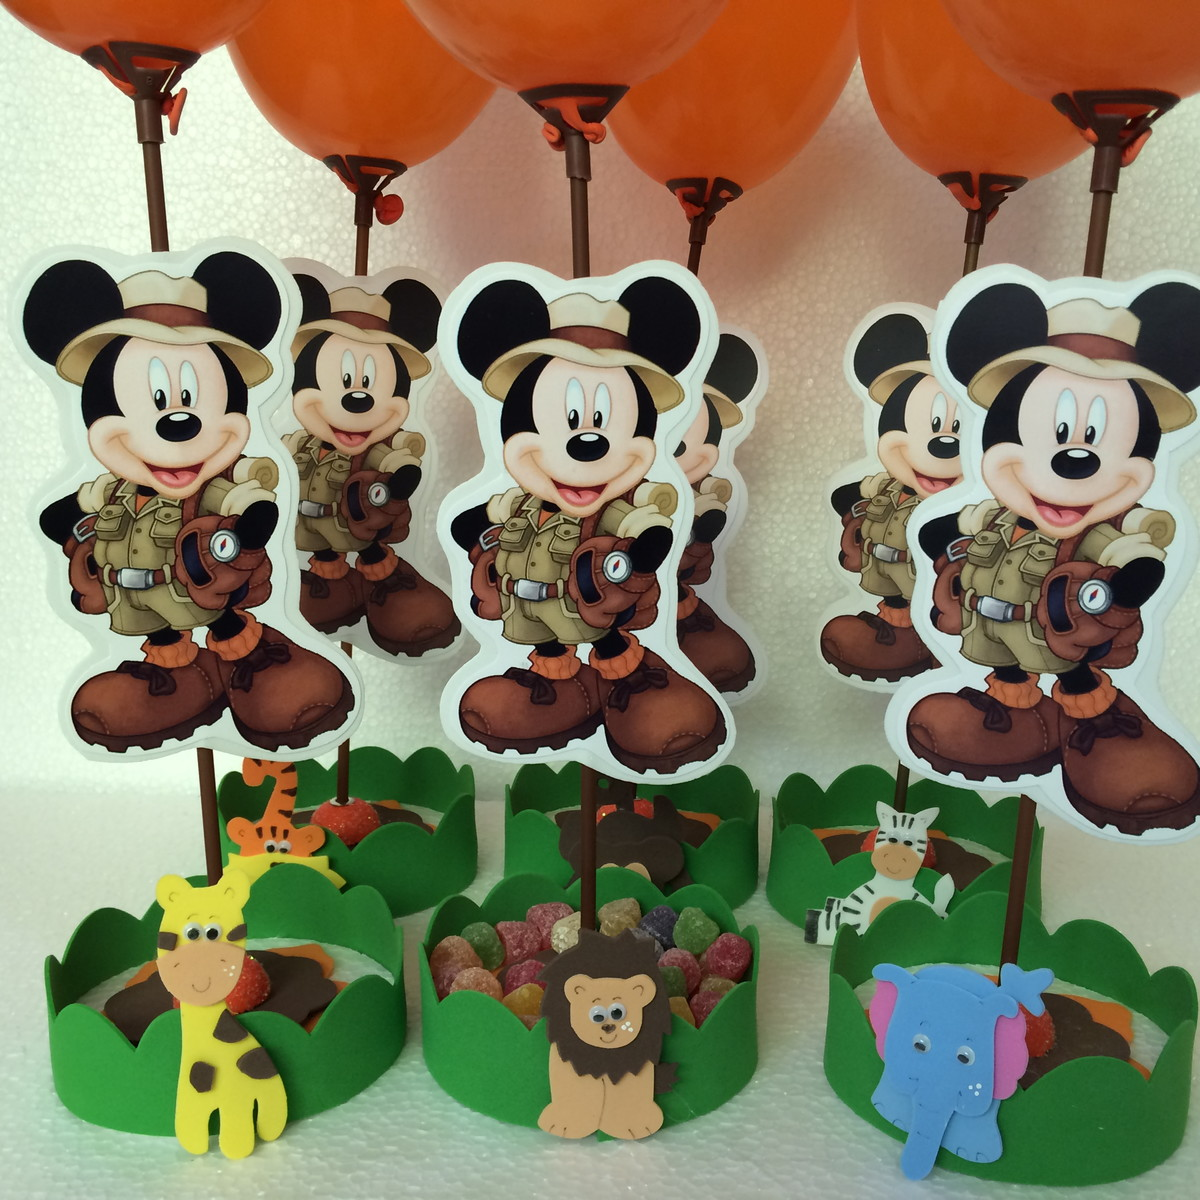 Mickey Safari Enfeite De Mesa Safari Mickey Safari Enfeite De Mesa